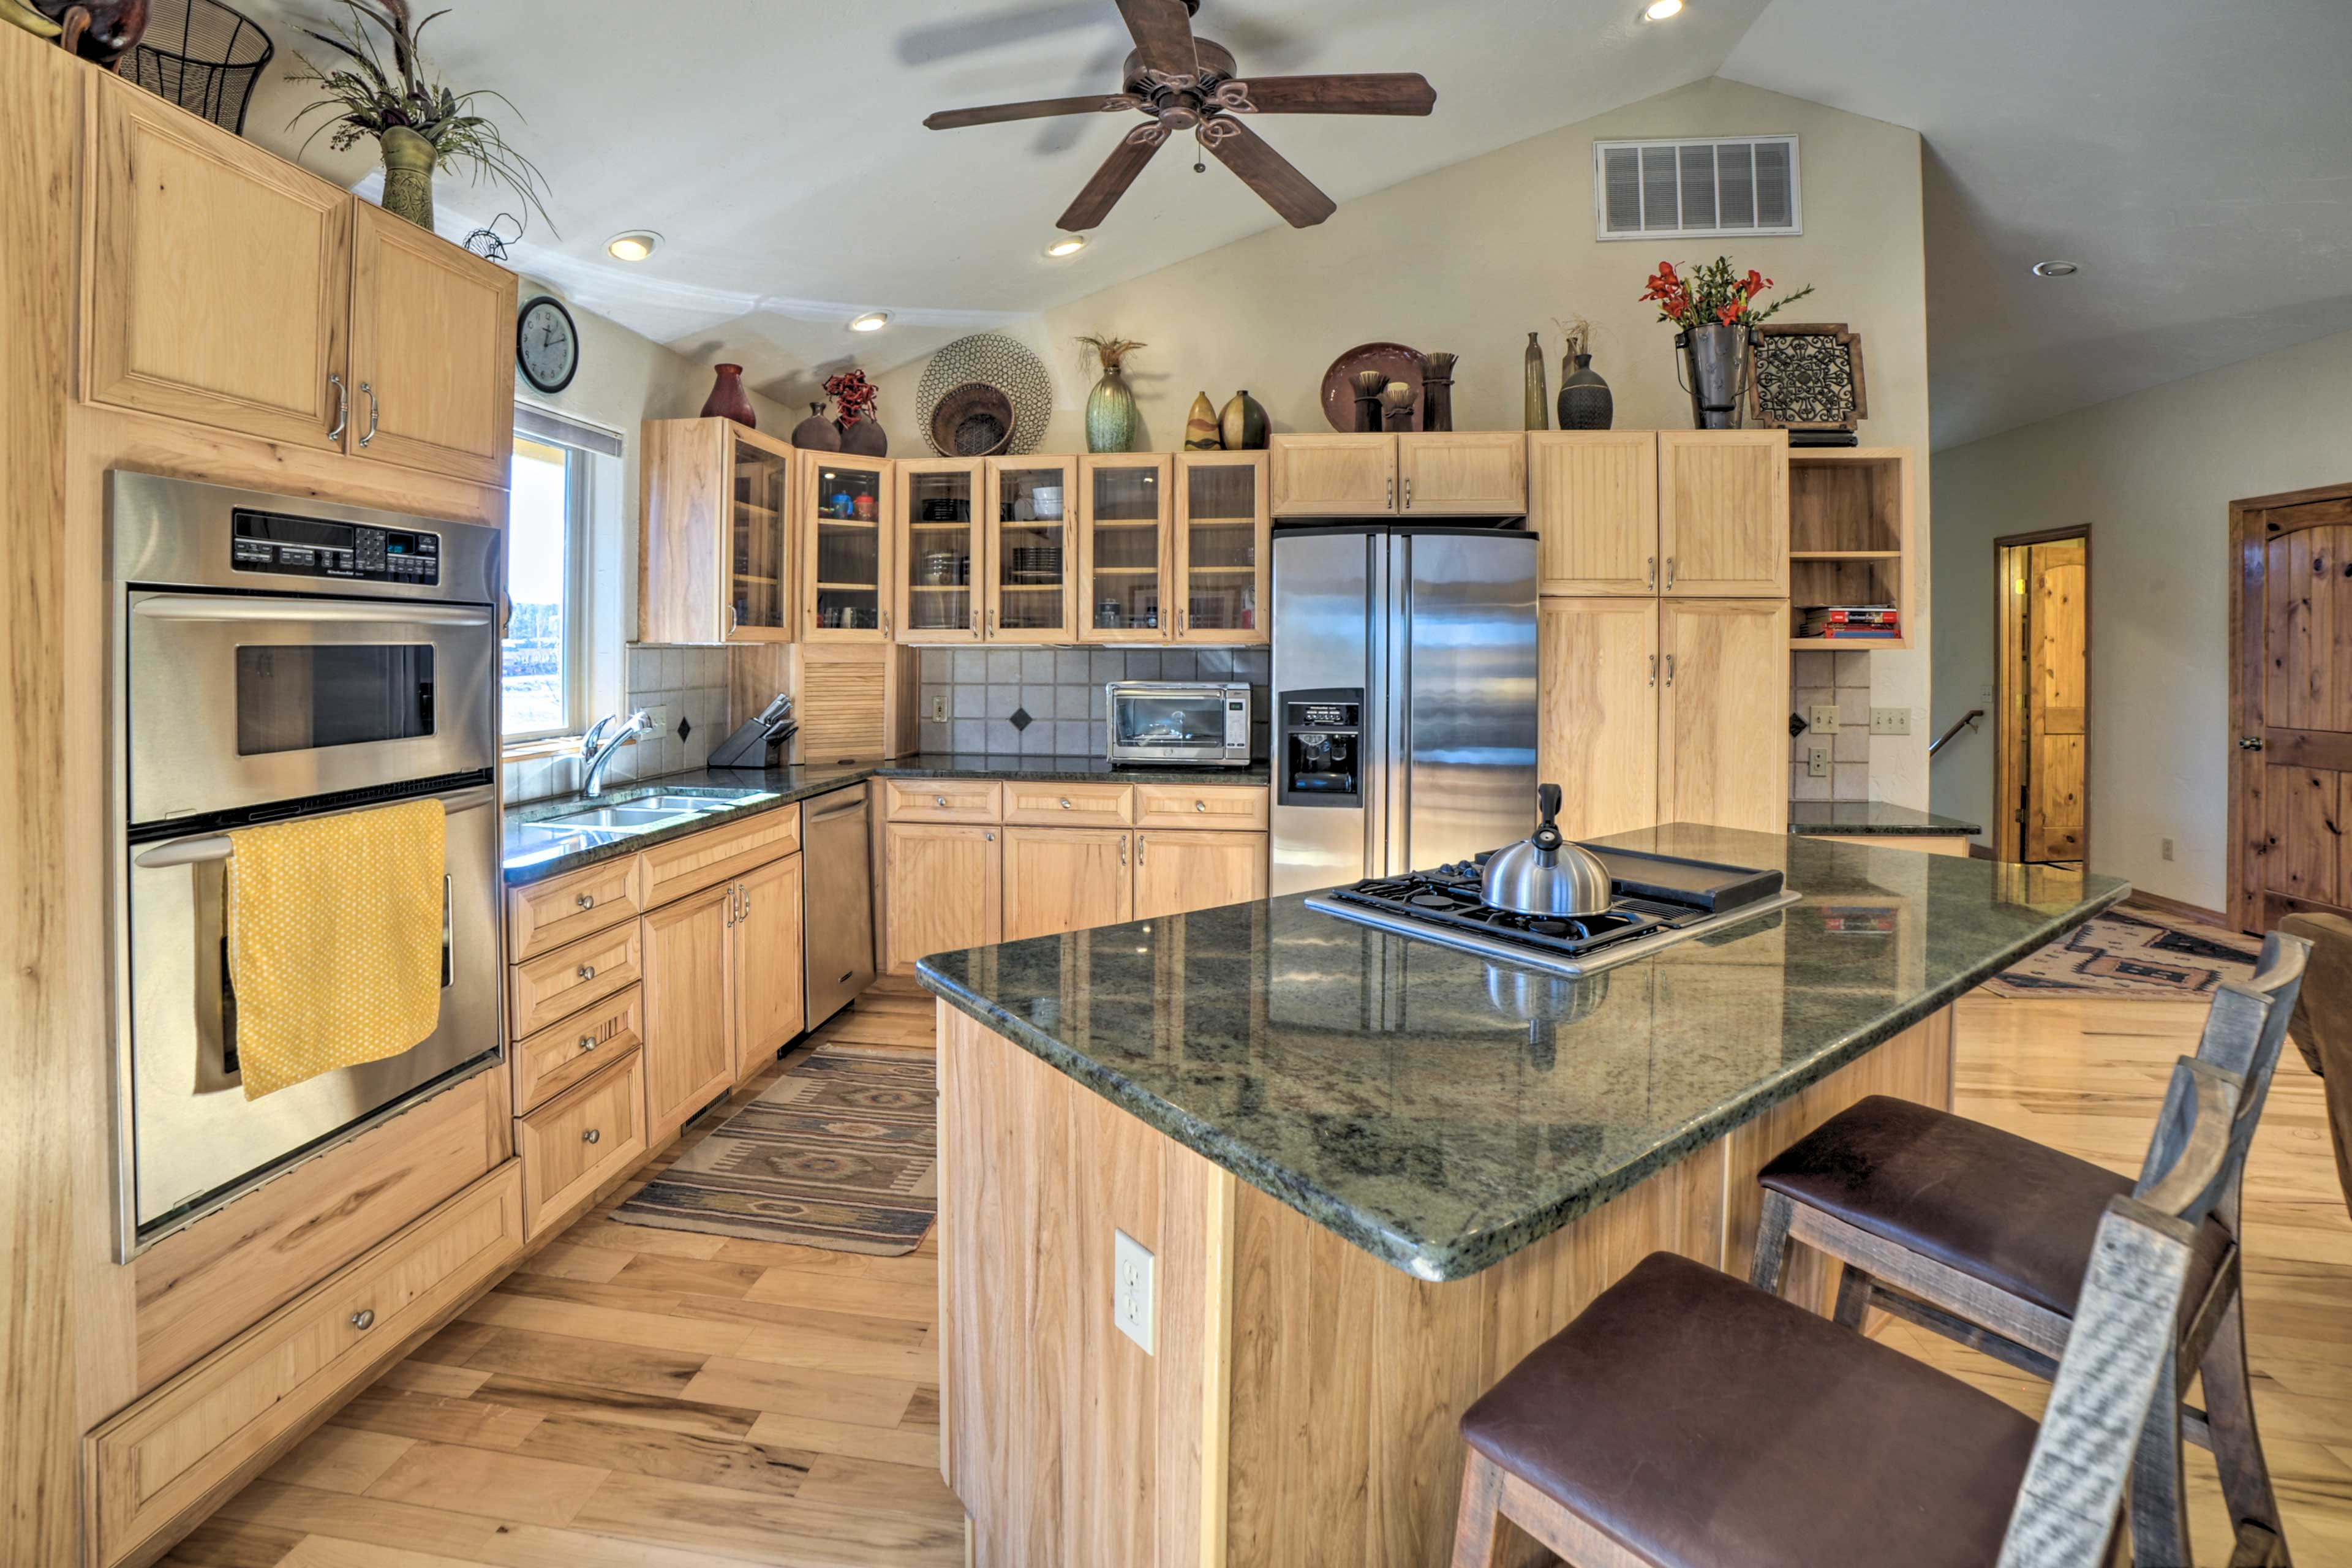 The fully equipped kitchen is complete with stainless steel appliances.